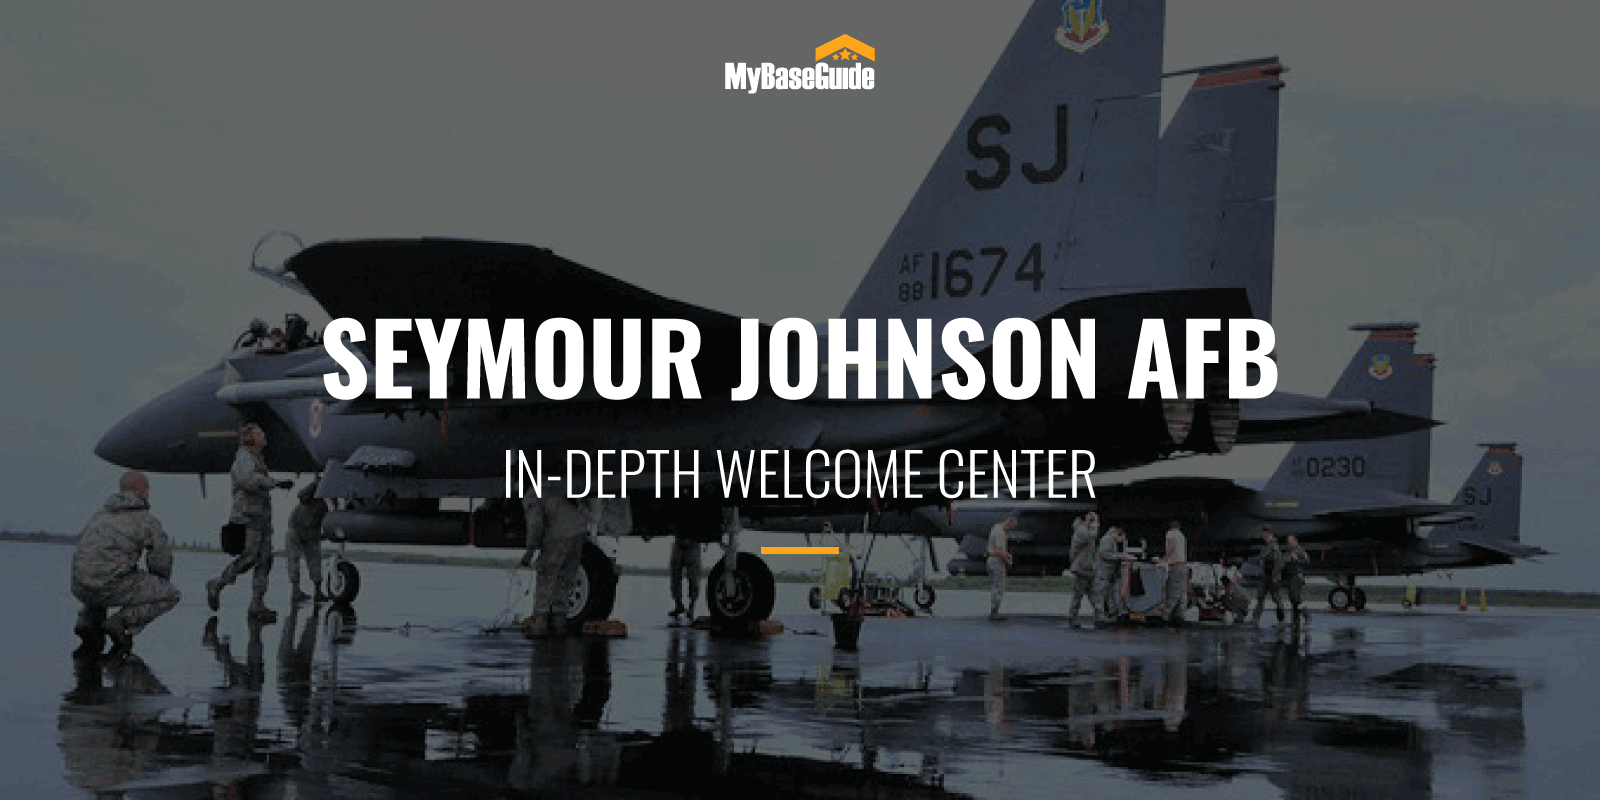 Seymour Johnson AFB In-Depth Welcome Center